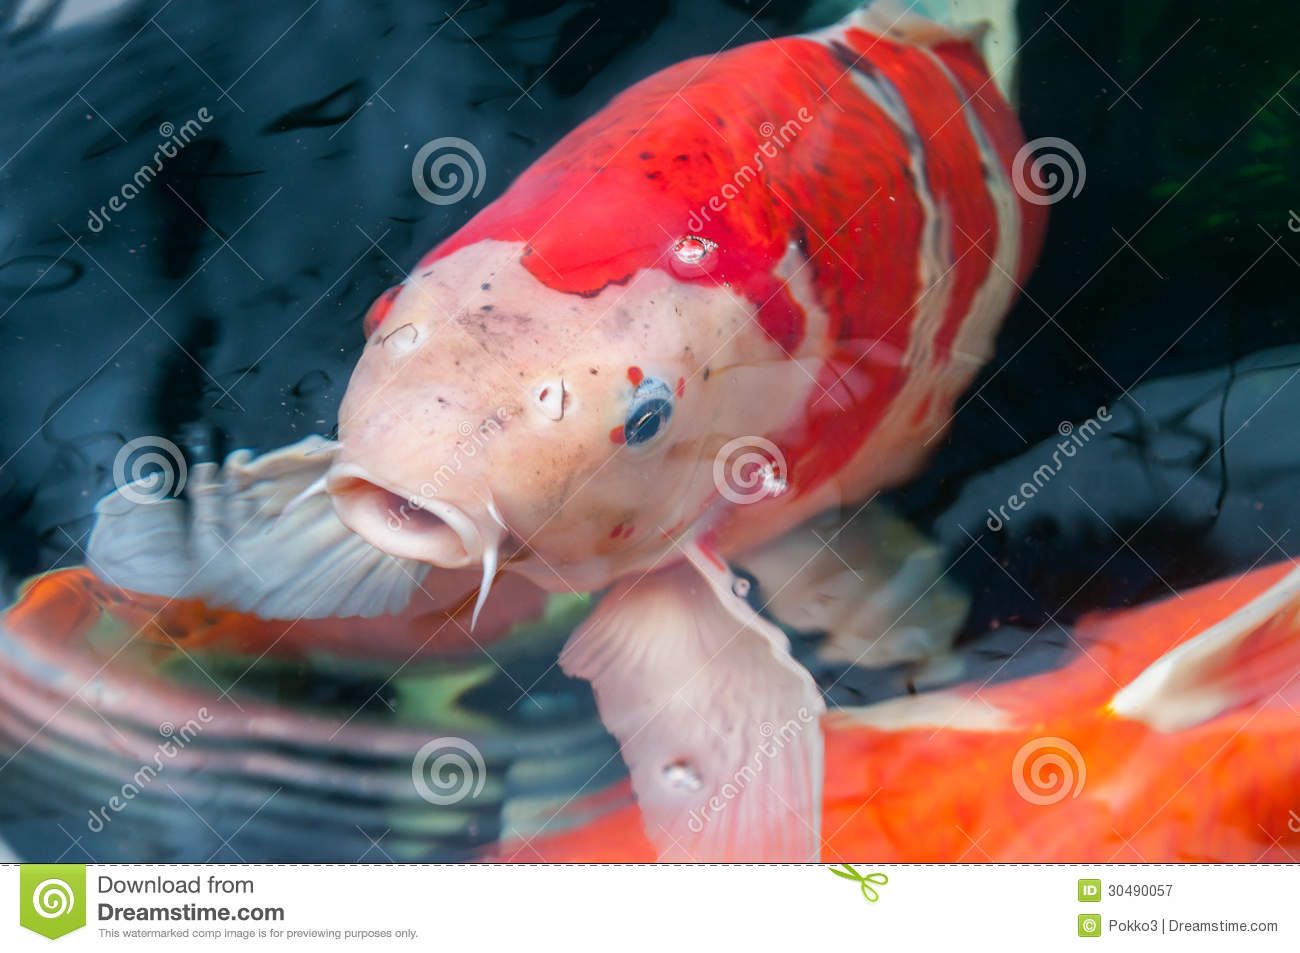 Koi fish royalty free stock photography image 30490057 for Dream of fish swimming